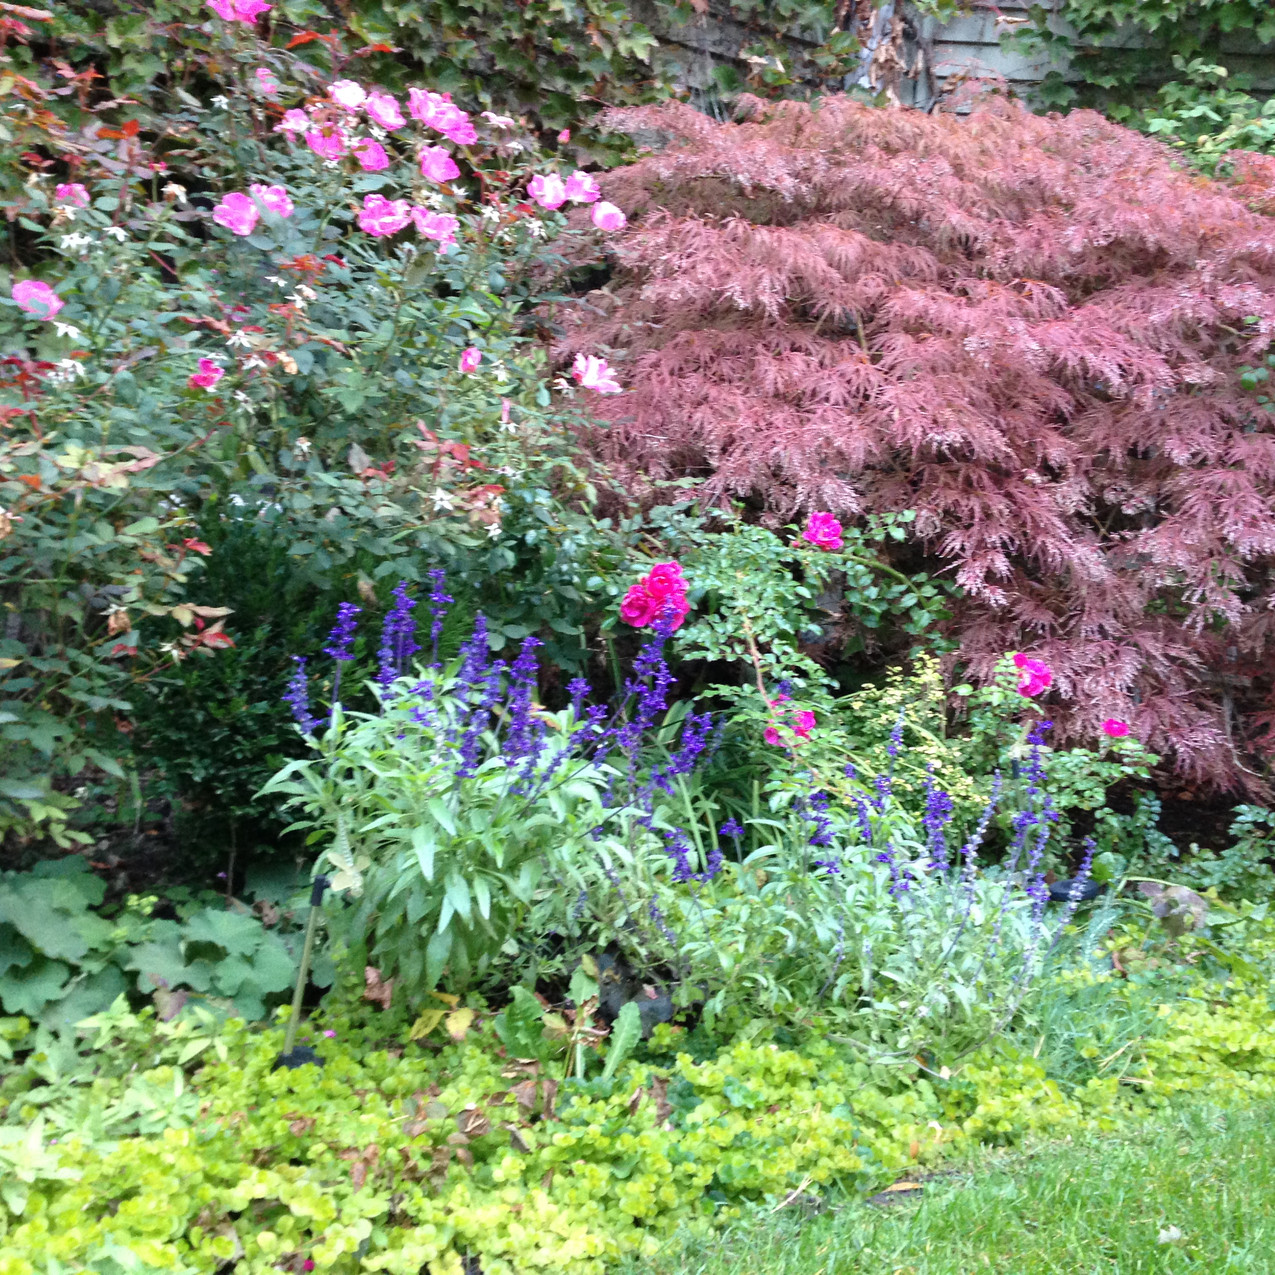 Japanese maple in back, knock out rises, tall phlox, annual salvia and creeping Jenny ground cover